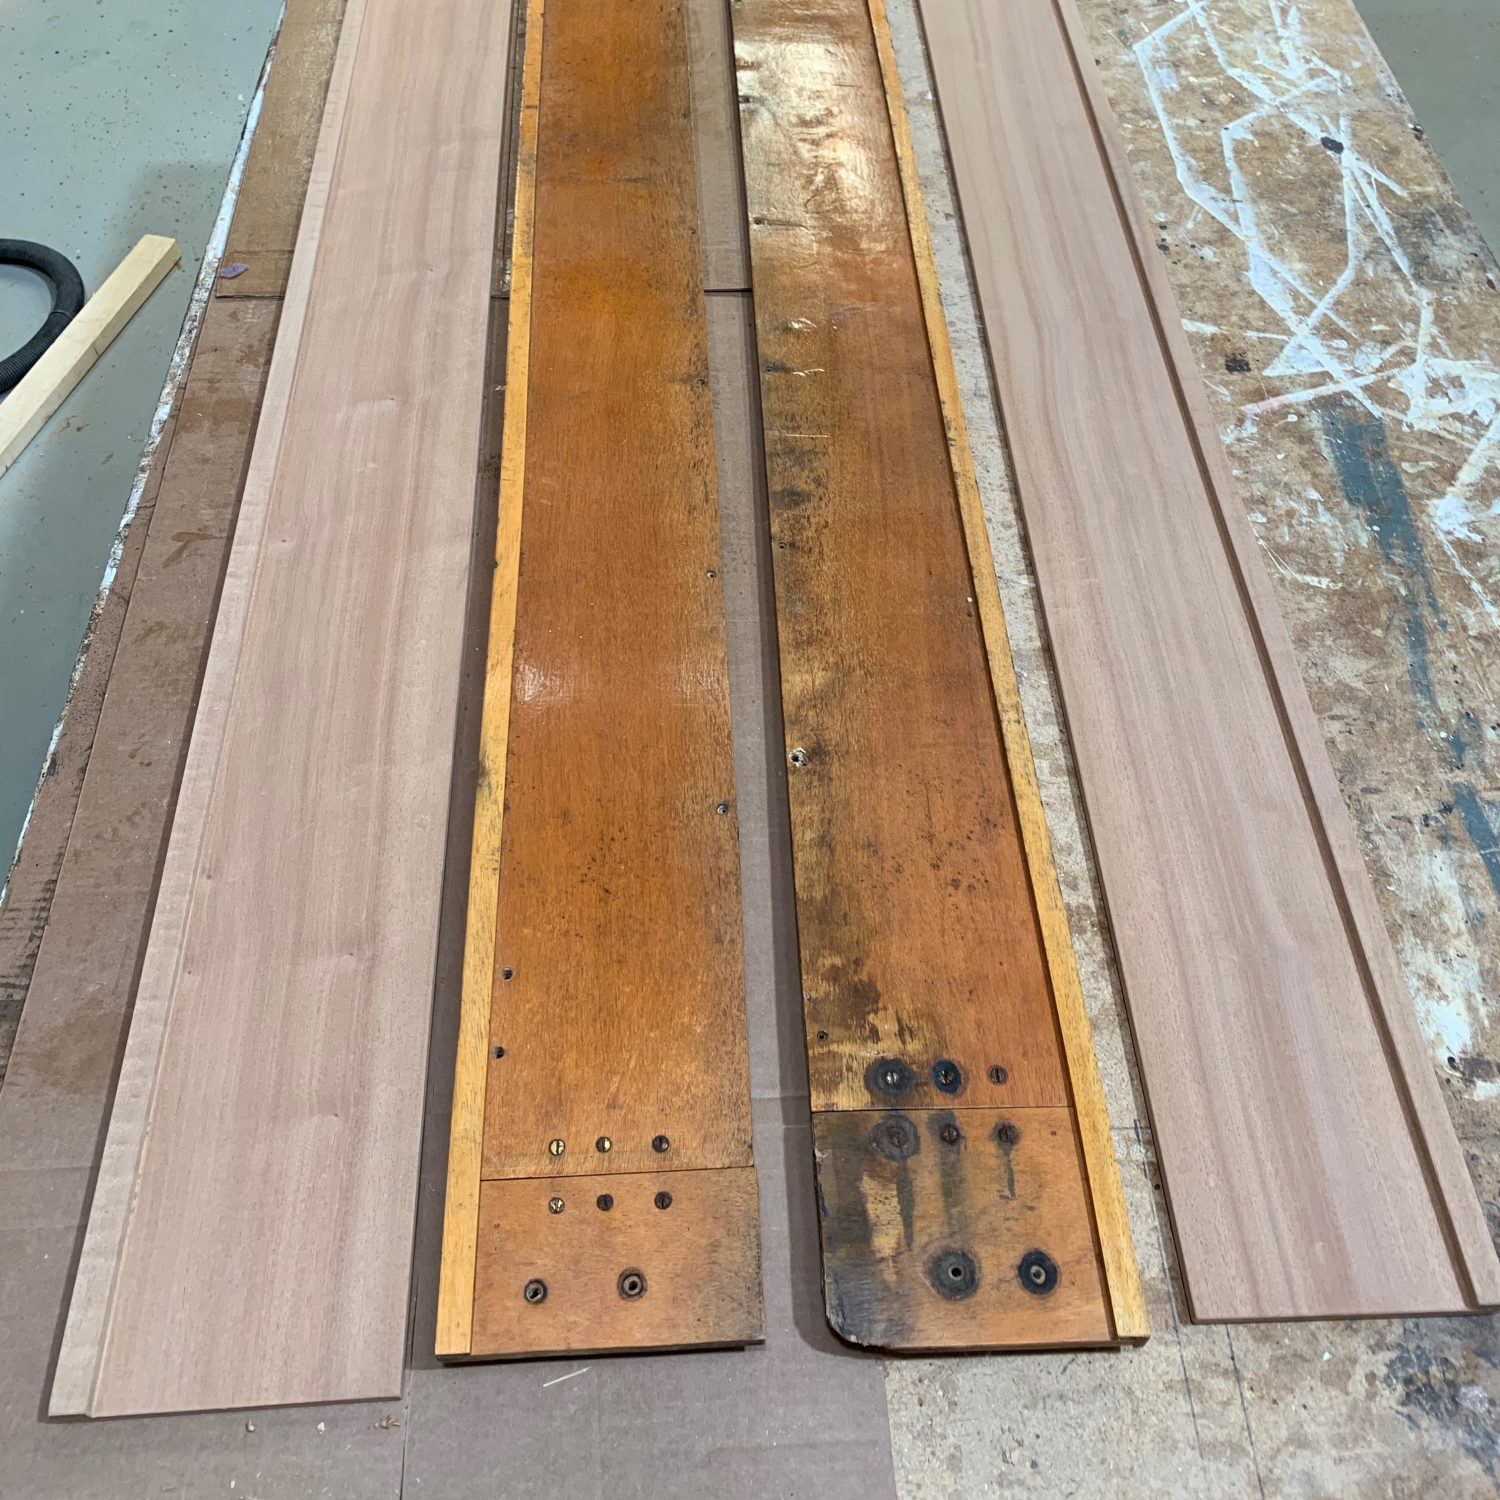 Replacement side boards copied from originals